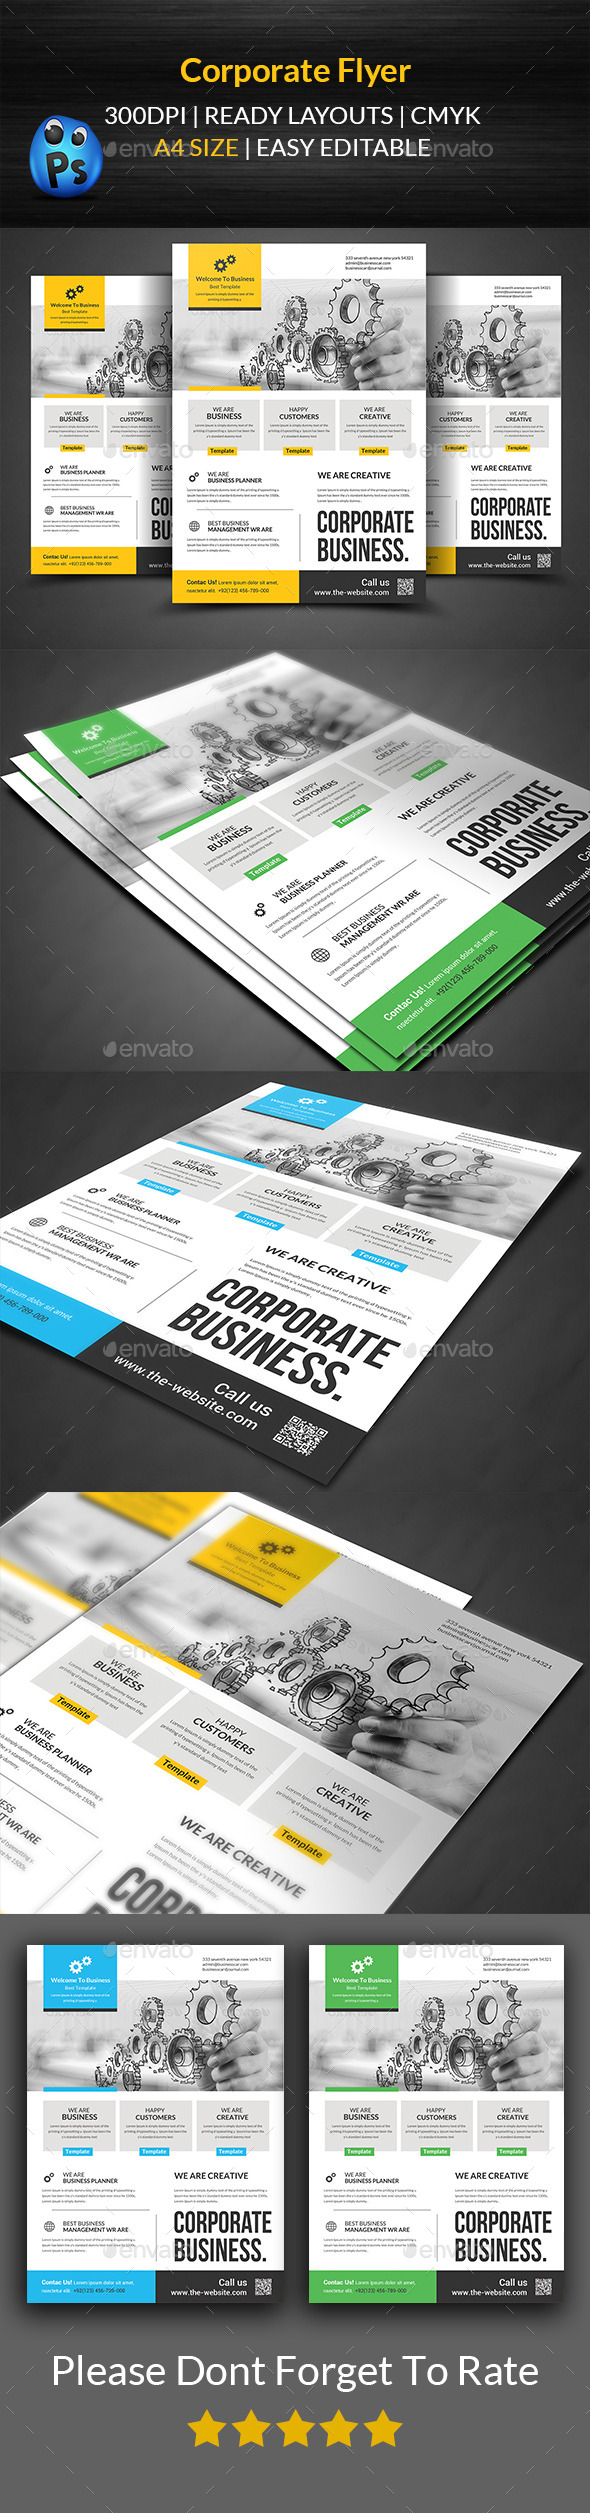 GraphicRiver Corporate Flyer Template 11785097